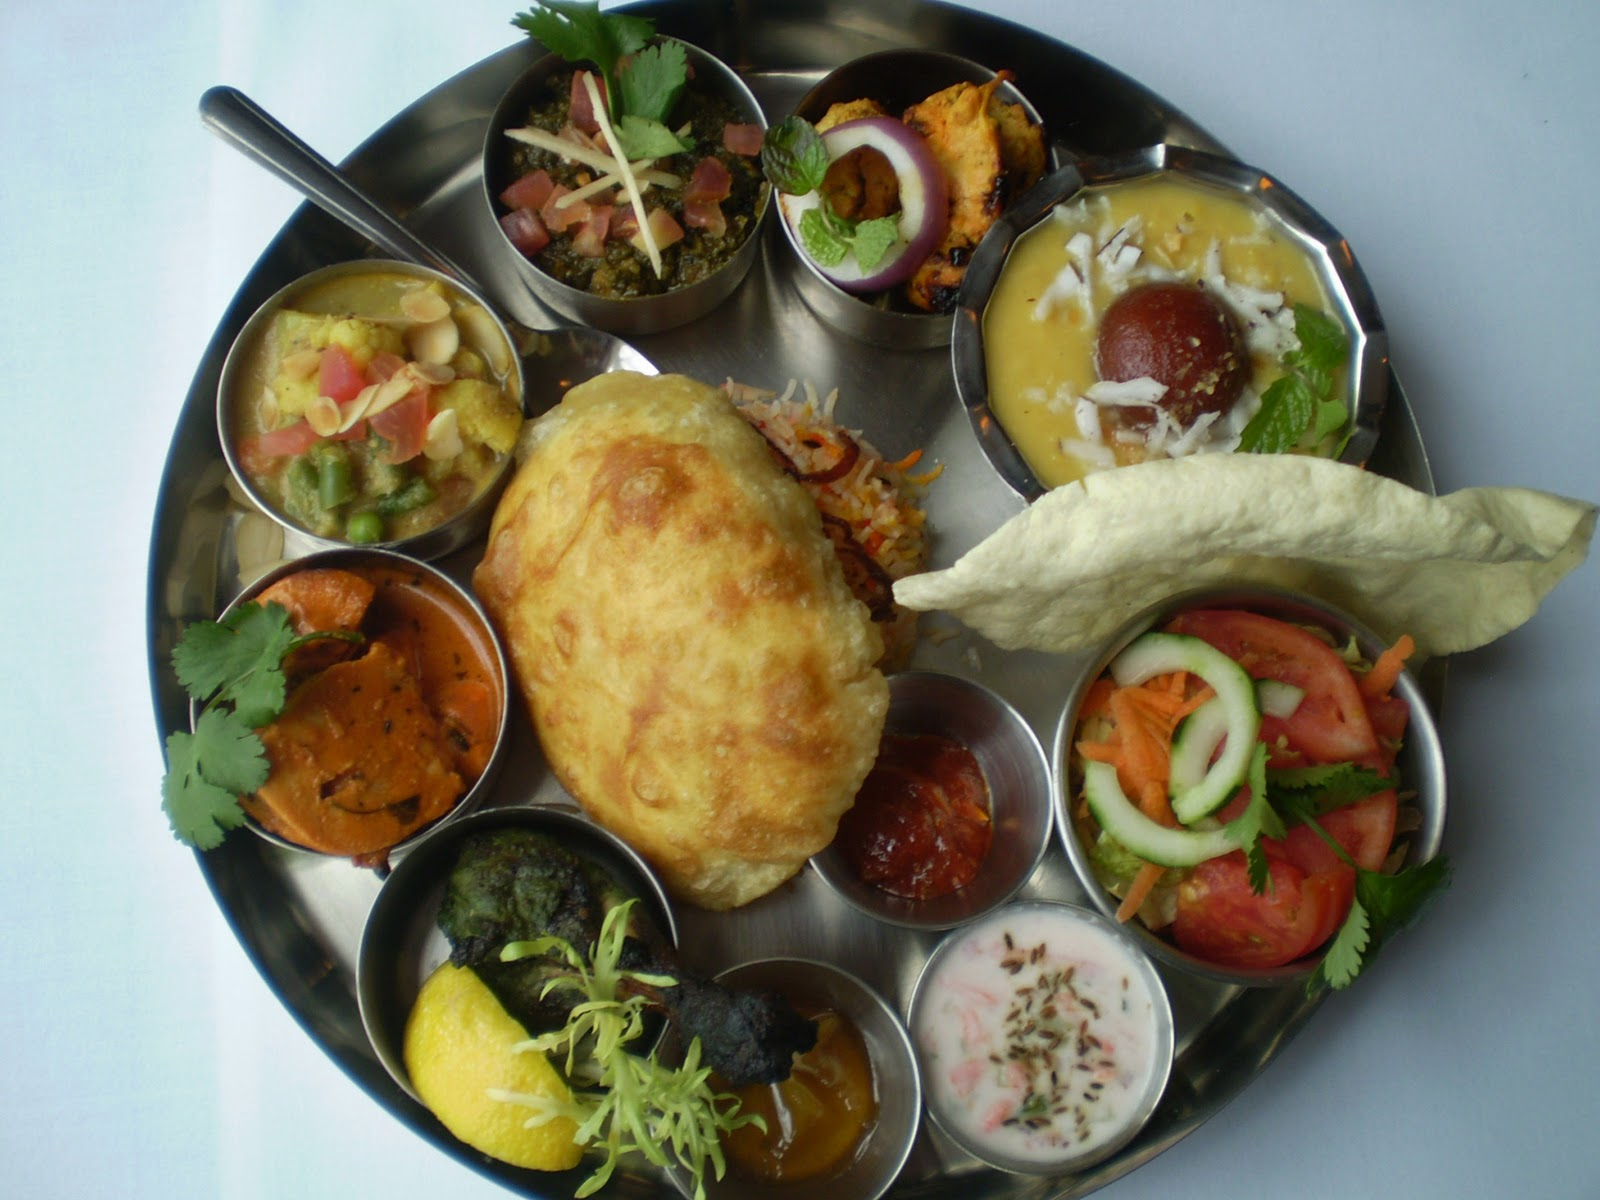 Food india cook eating at indian thali and a mashed eggplant recipe non veg thalis include meat and seafood the dinner menu adds thai dishes influenced by both india and china forumfinder Image collections